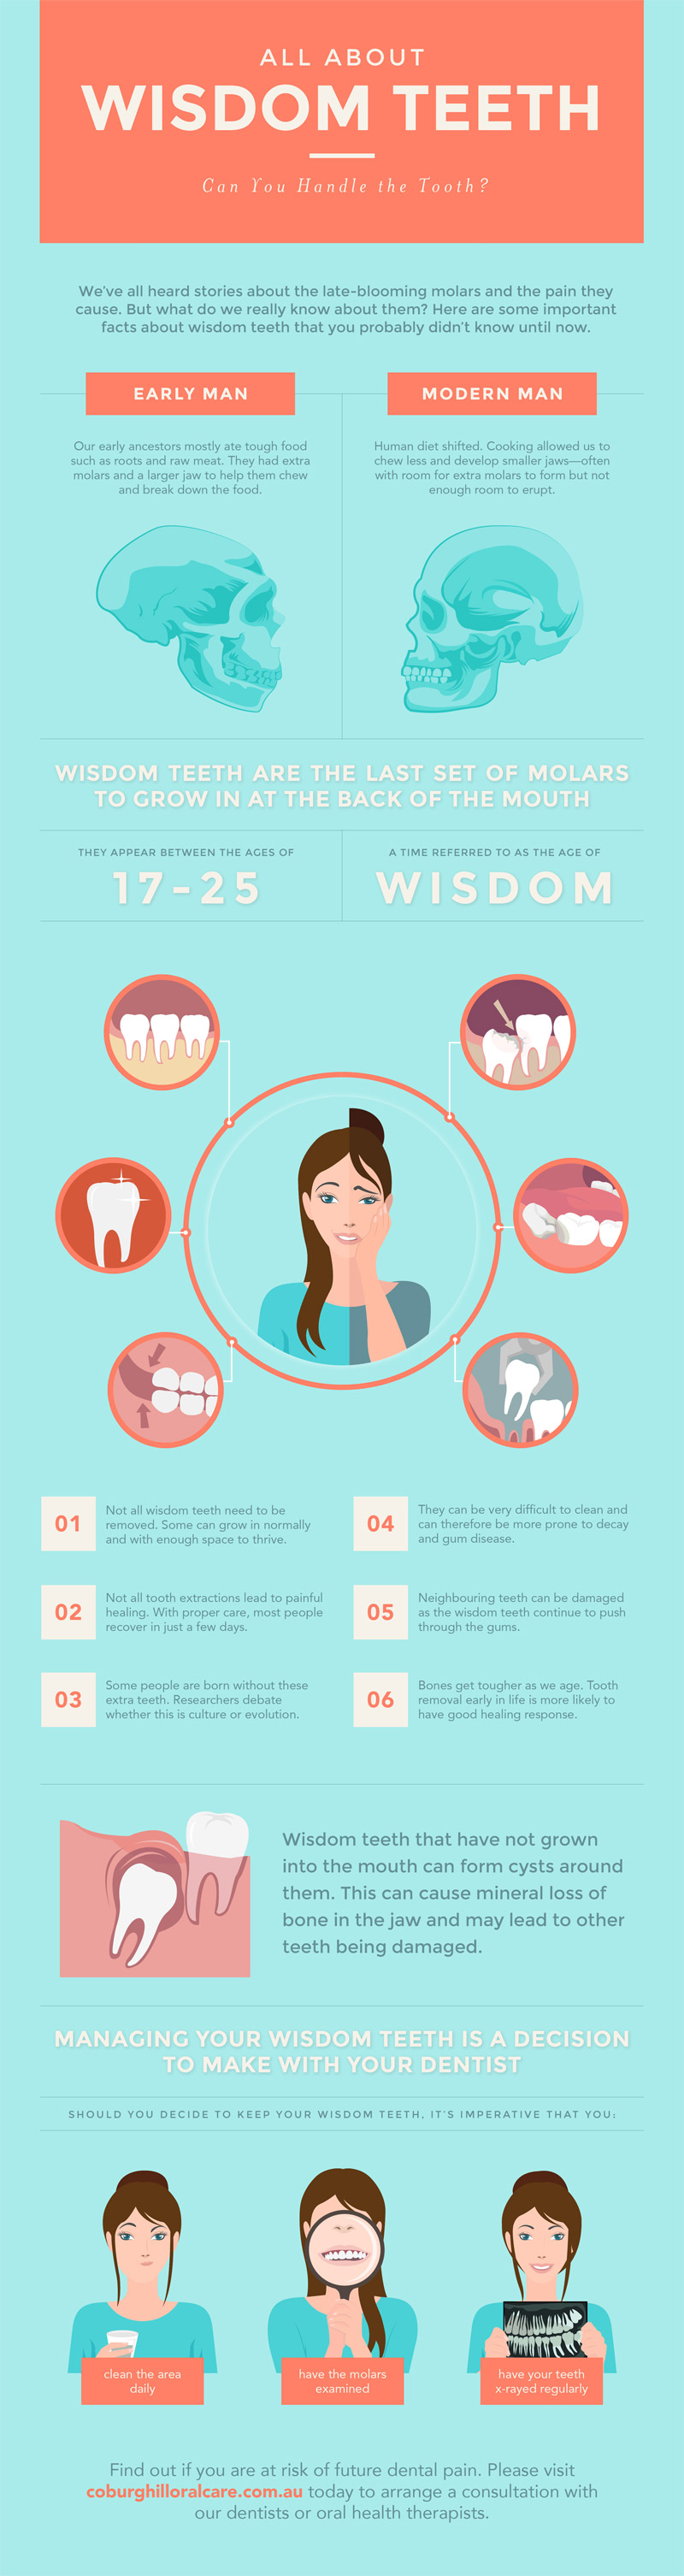 Amazing Wisdom Teeth Facts